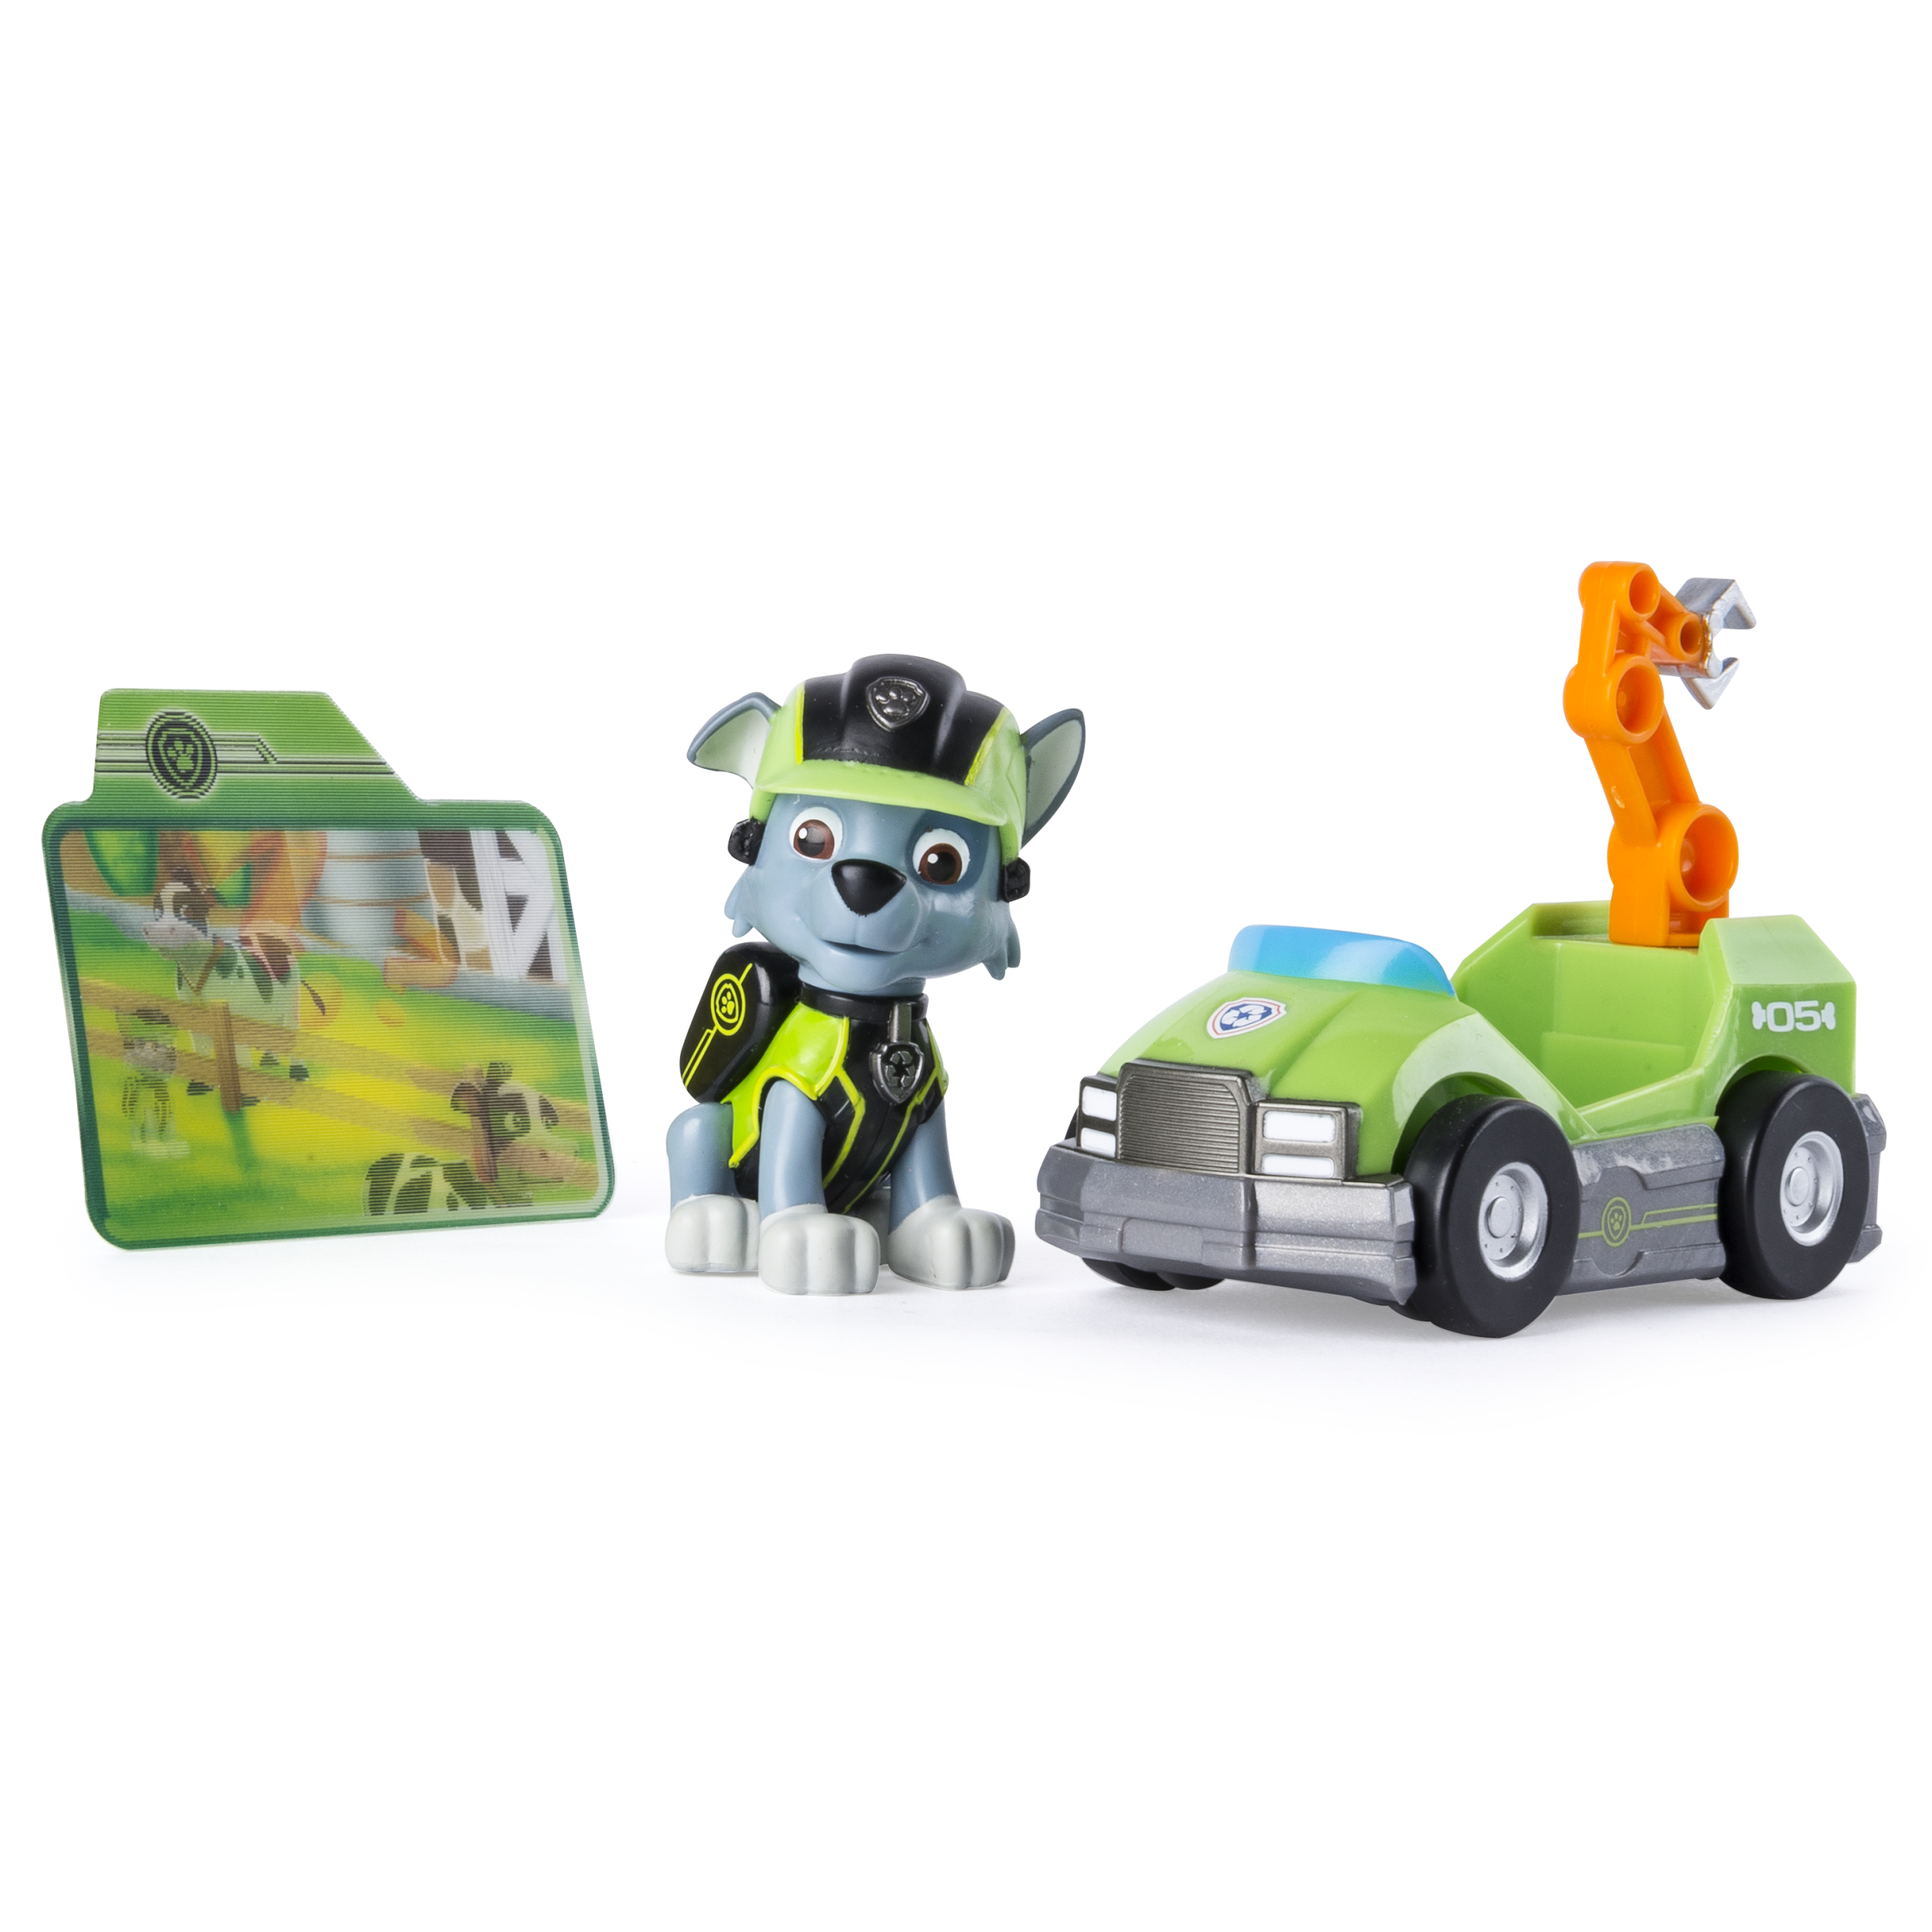 <p>Paw Patrol Mission Paw - Rocky's Repair Kart - Figure and Vehicle</p>